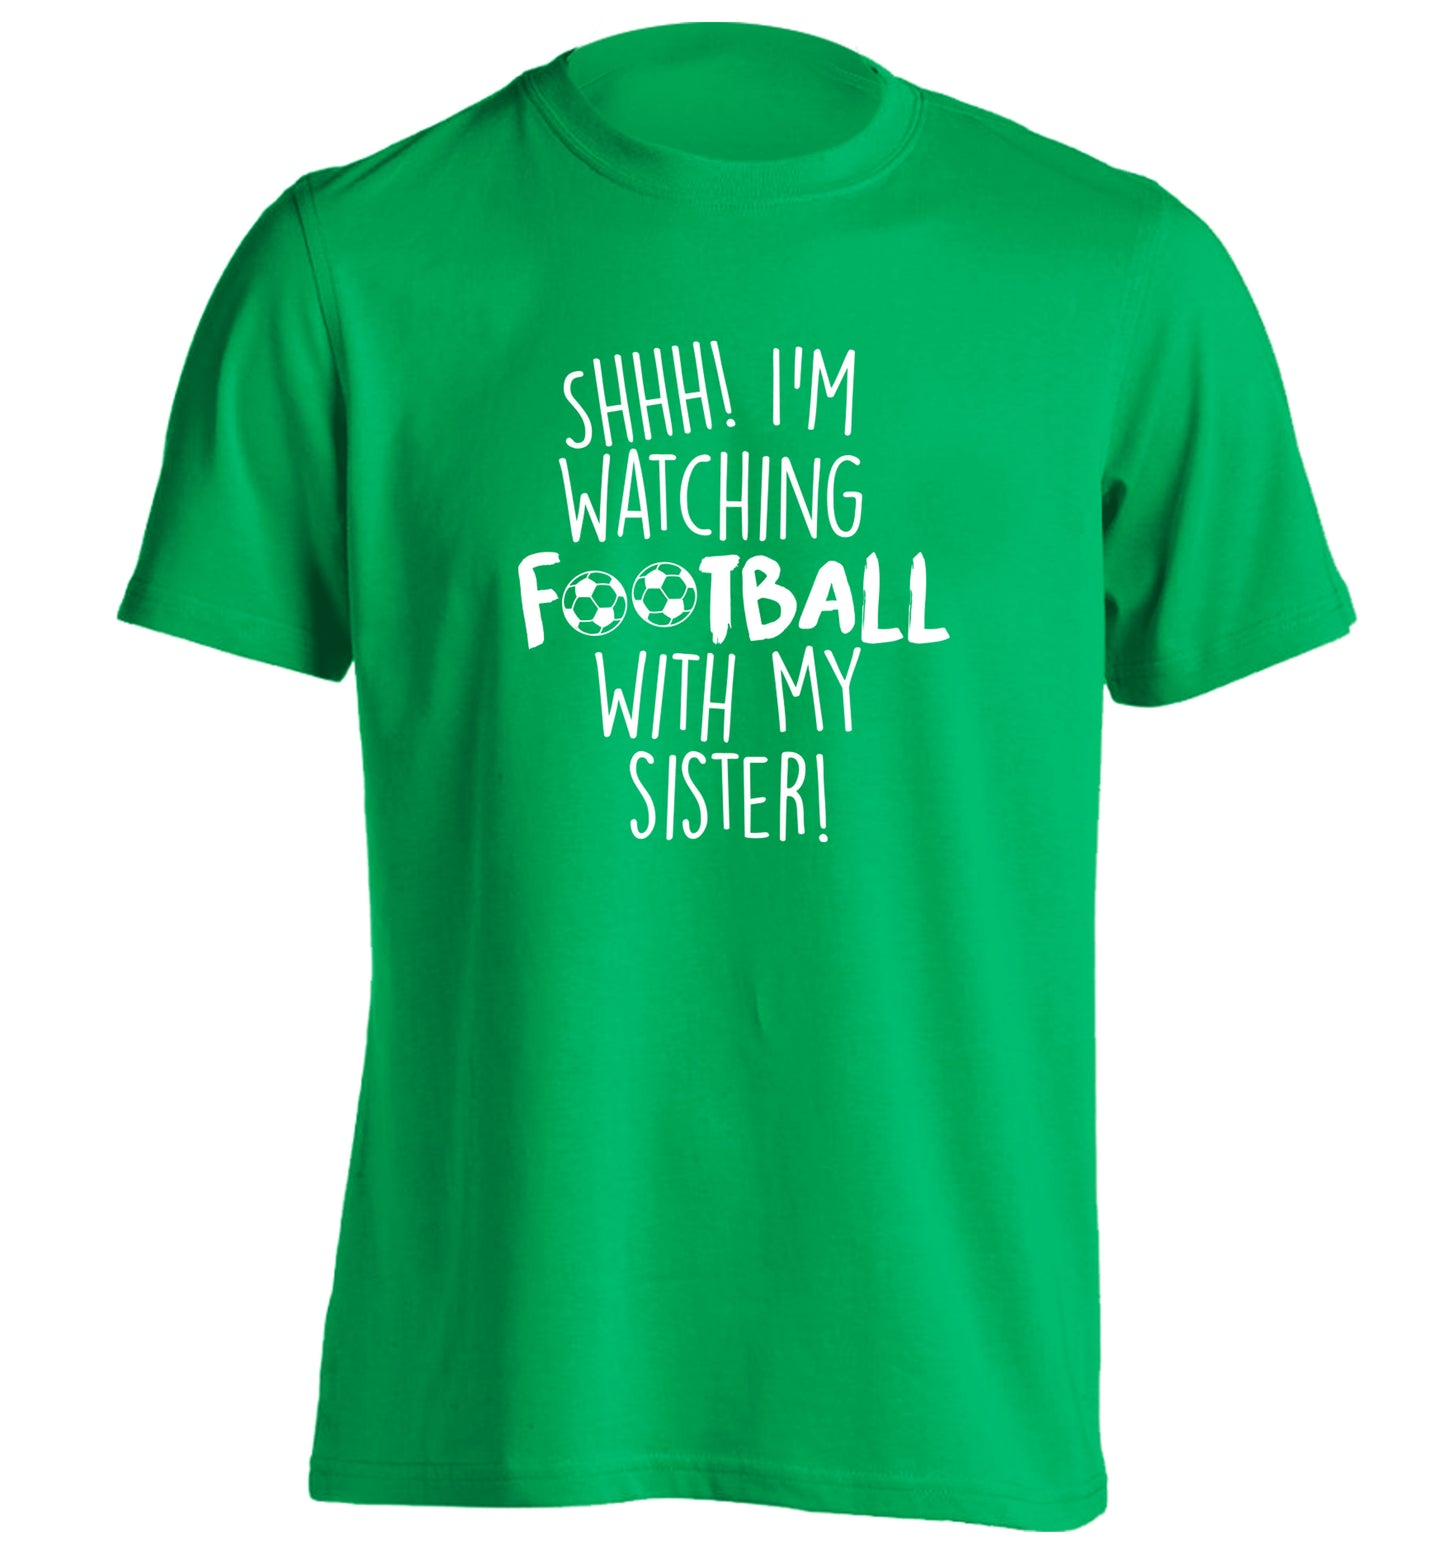 Shhh I'm watching football with my sister adults unisexgreen Tshirt 2XL